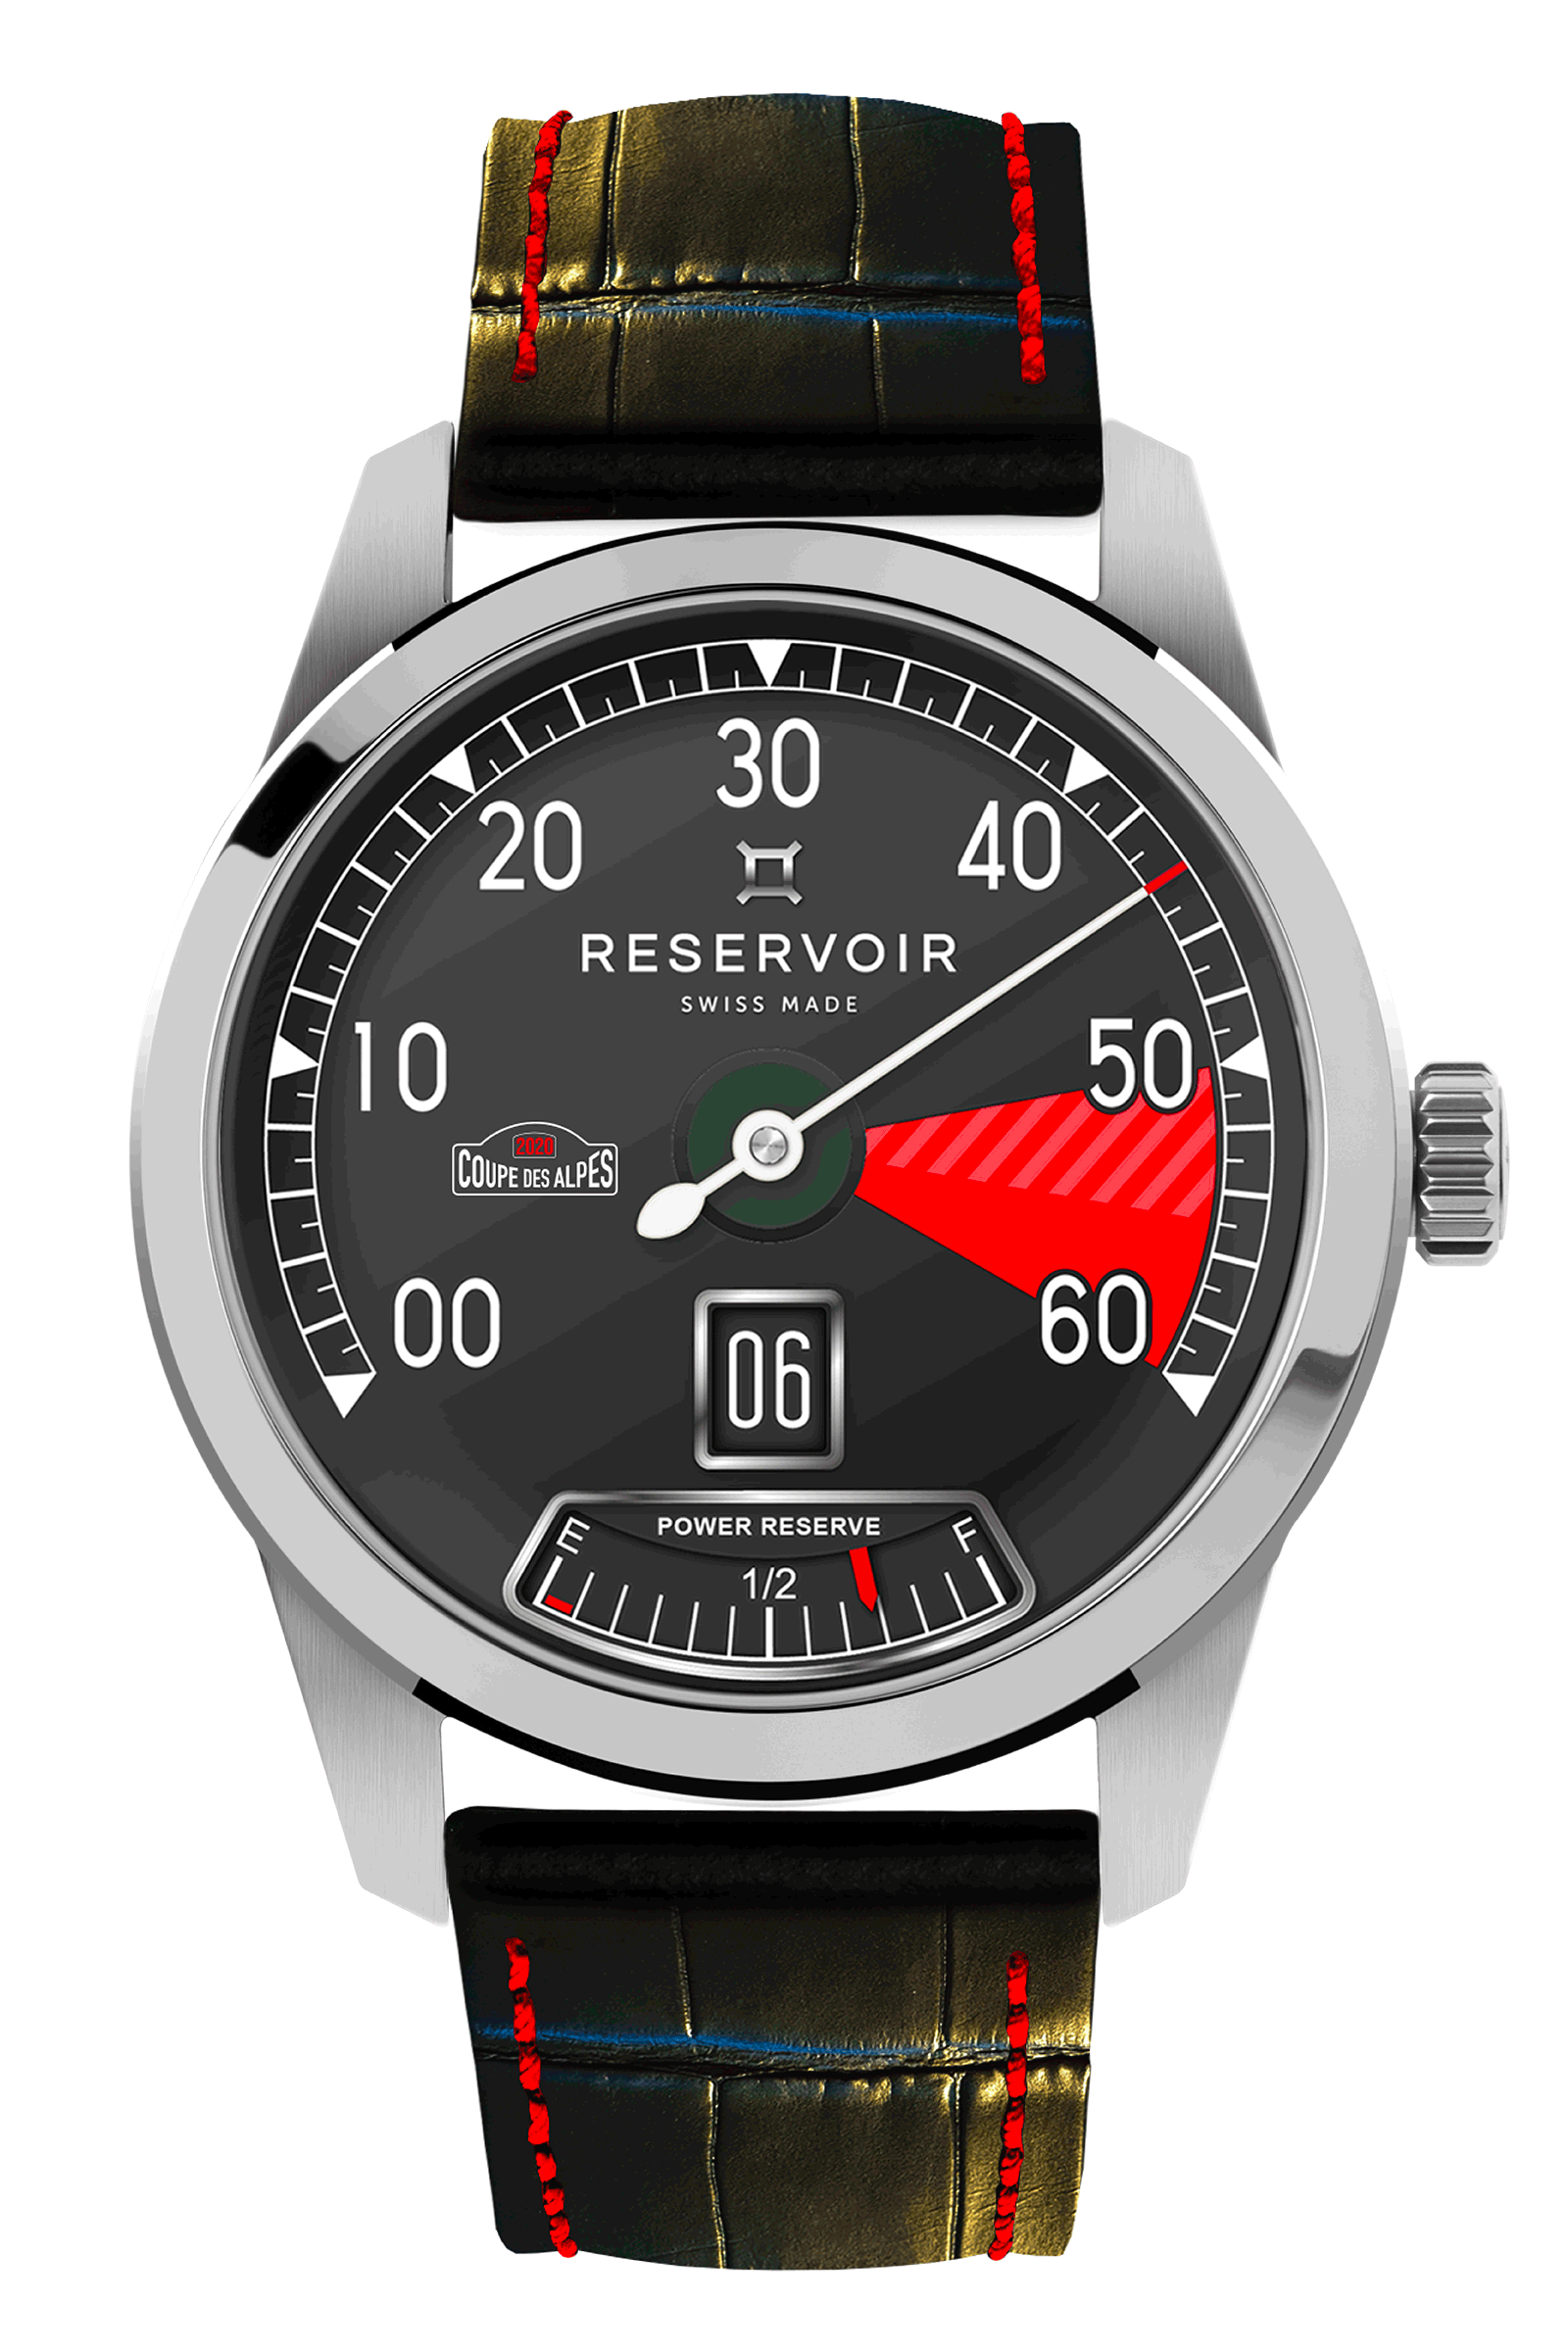 reservoir watch supercharged coupe des alpes 2020